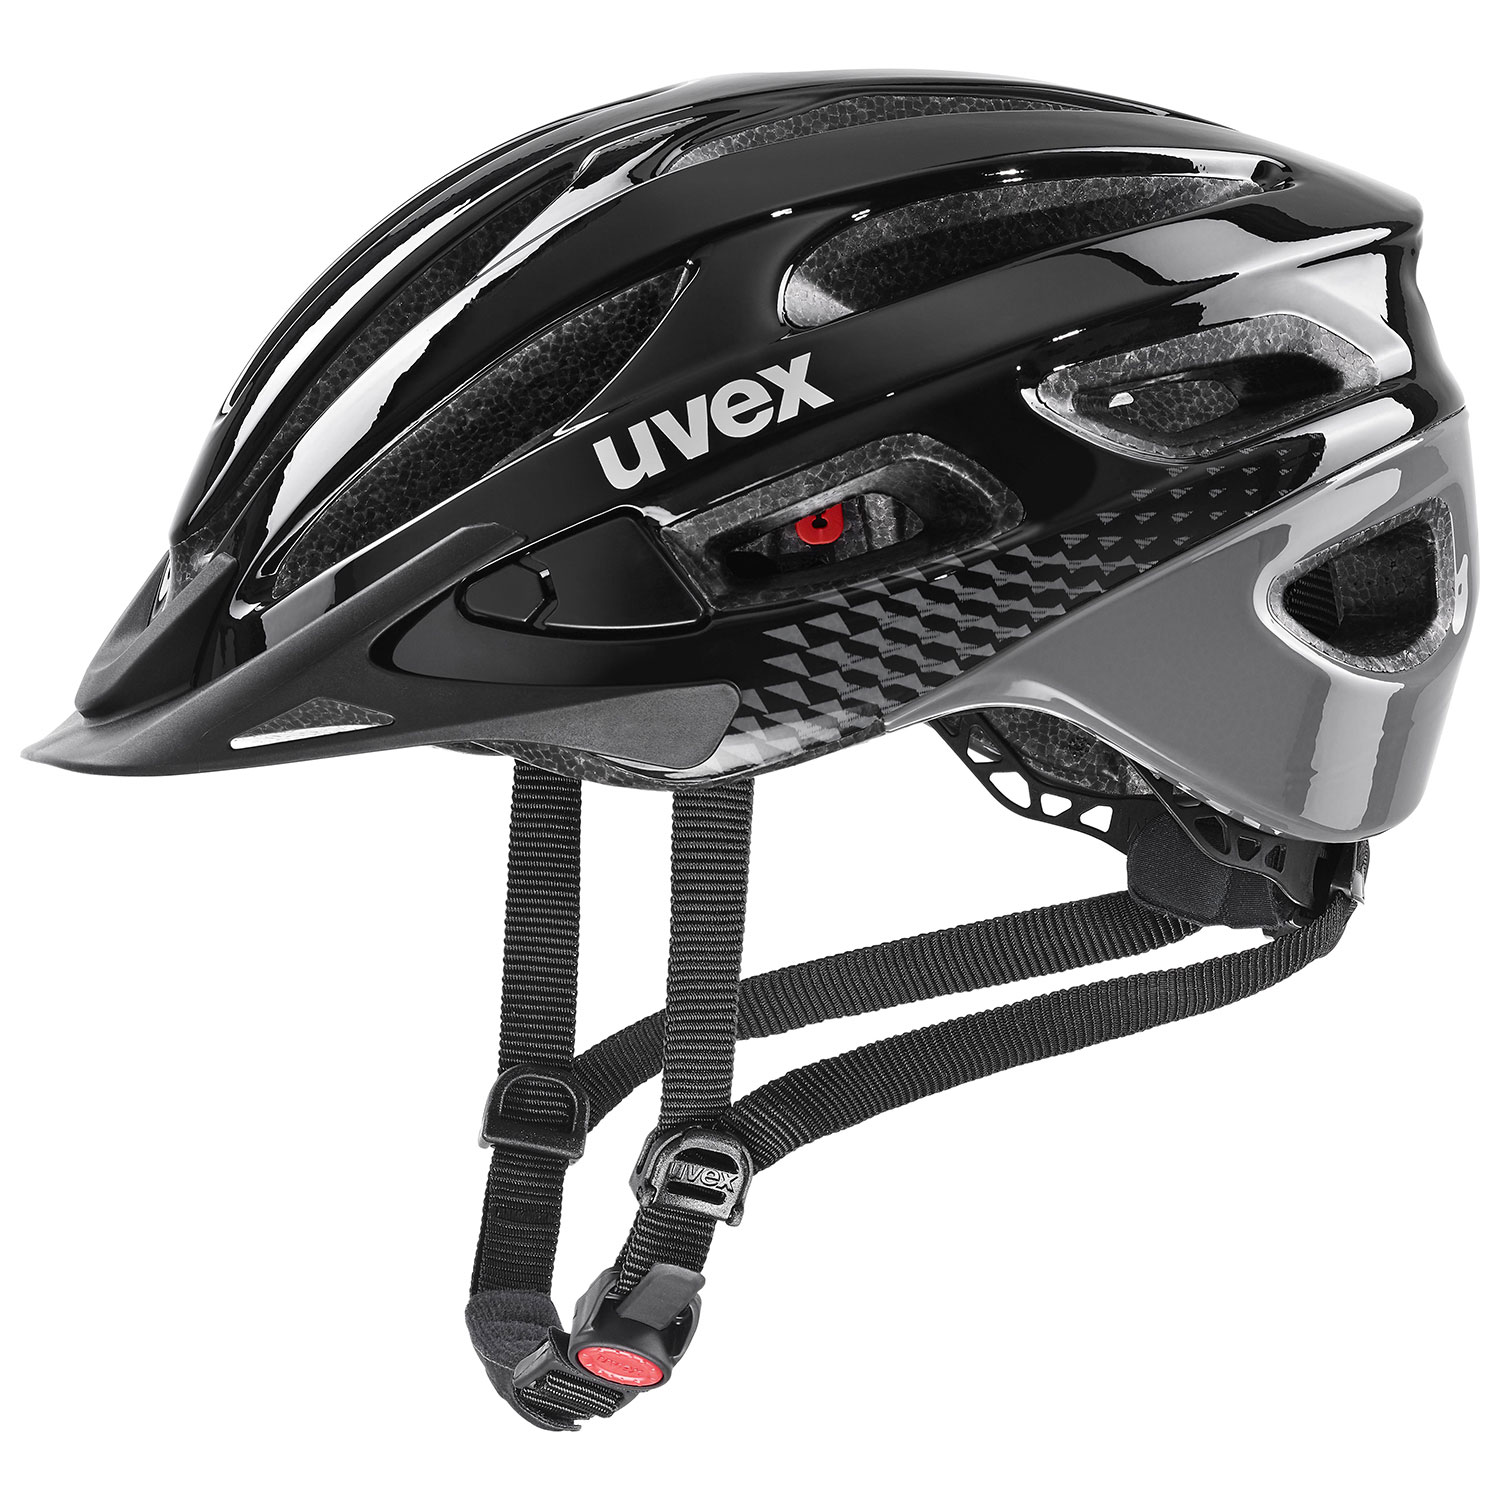 2021 UVEX HELMA TRUE, BLACK - GREY 55-58